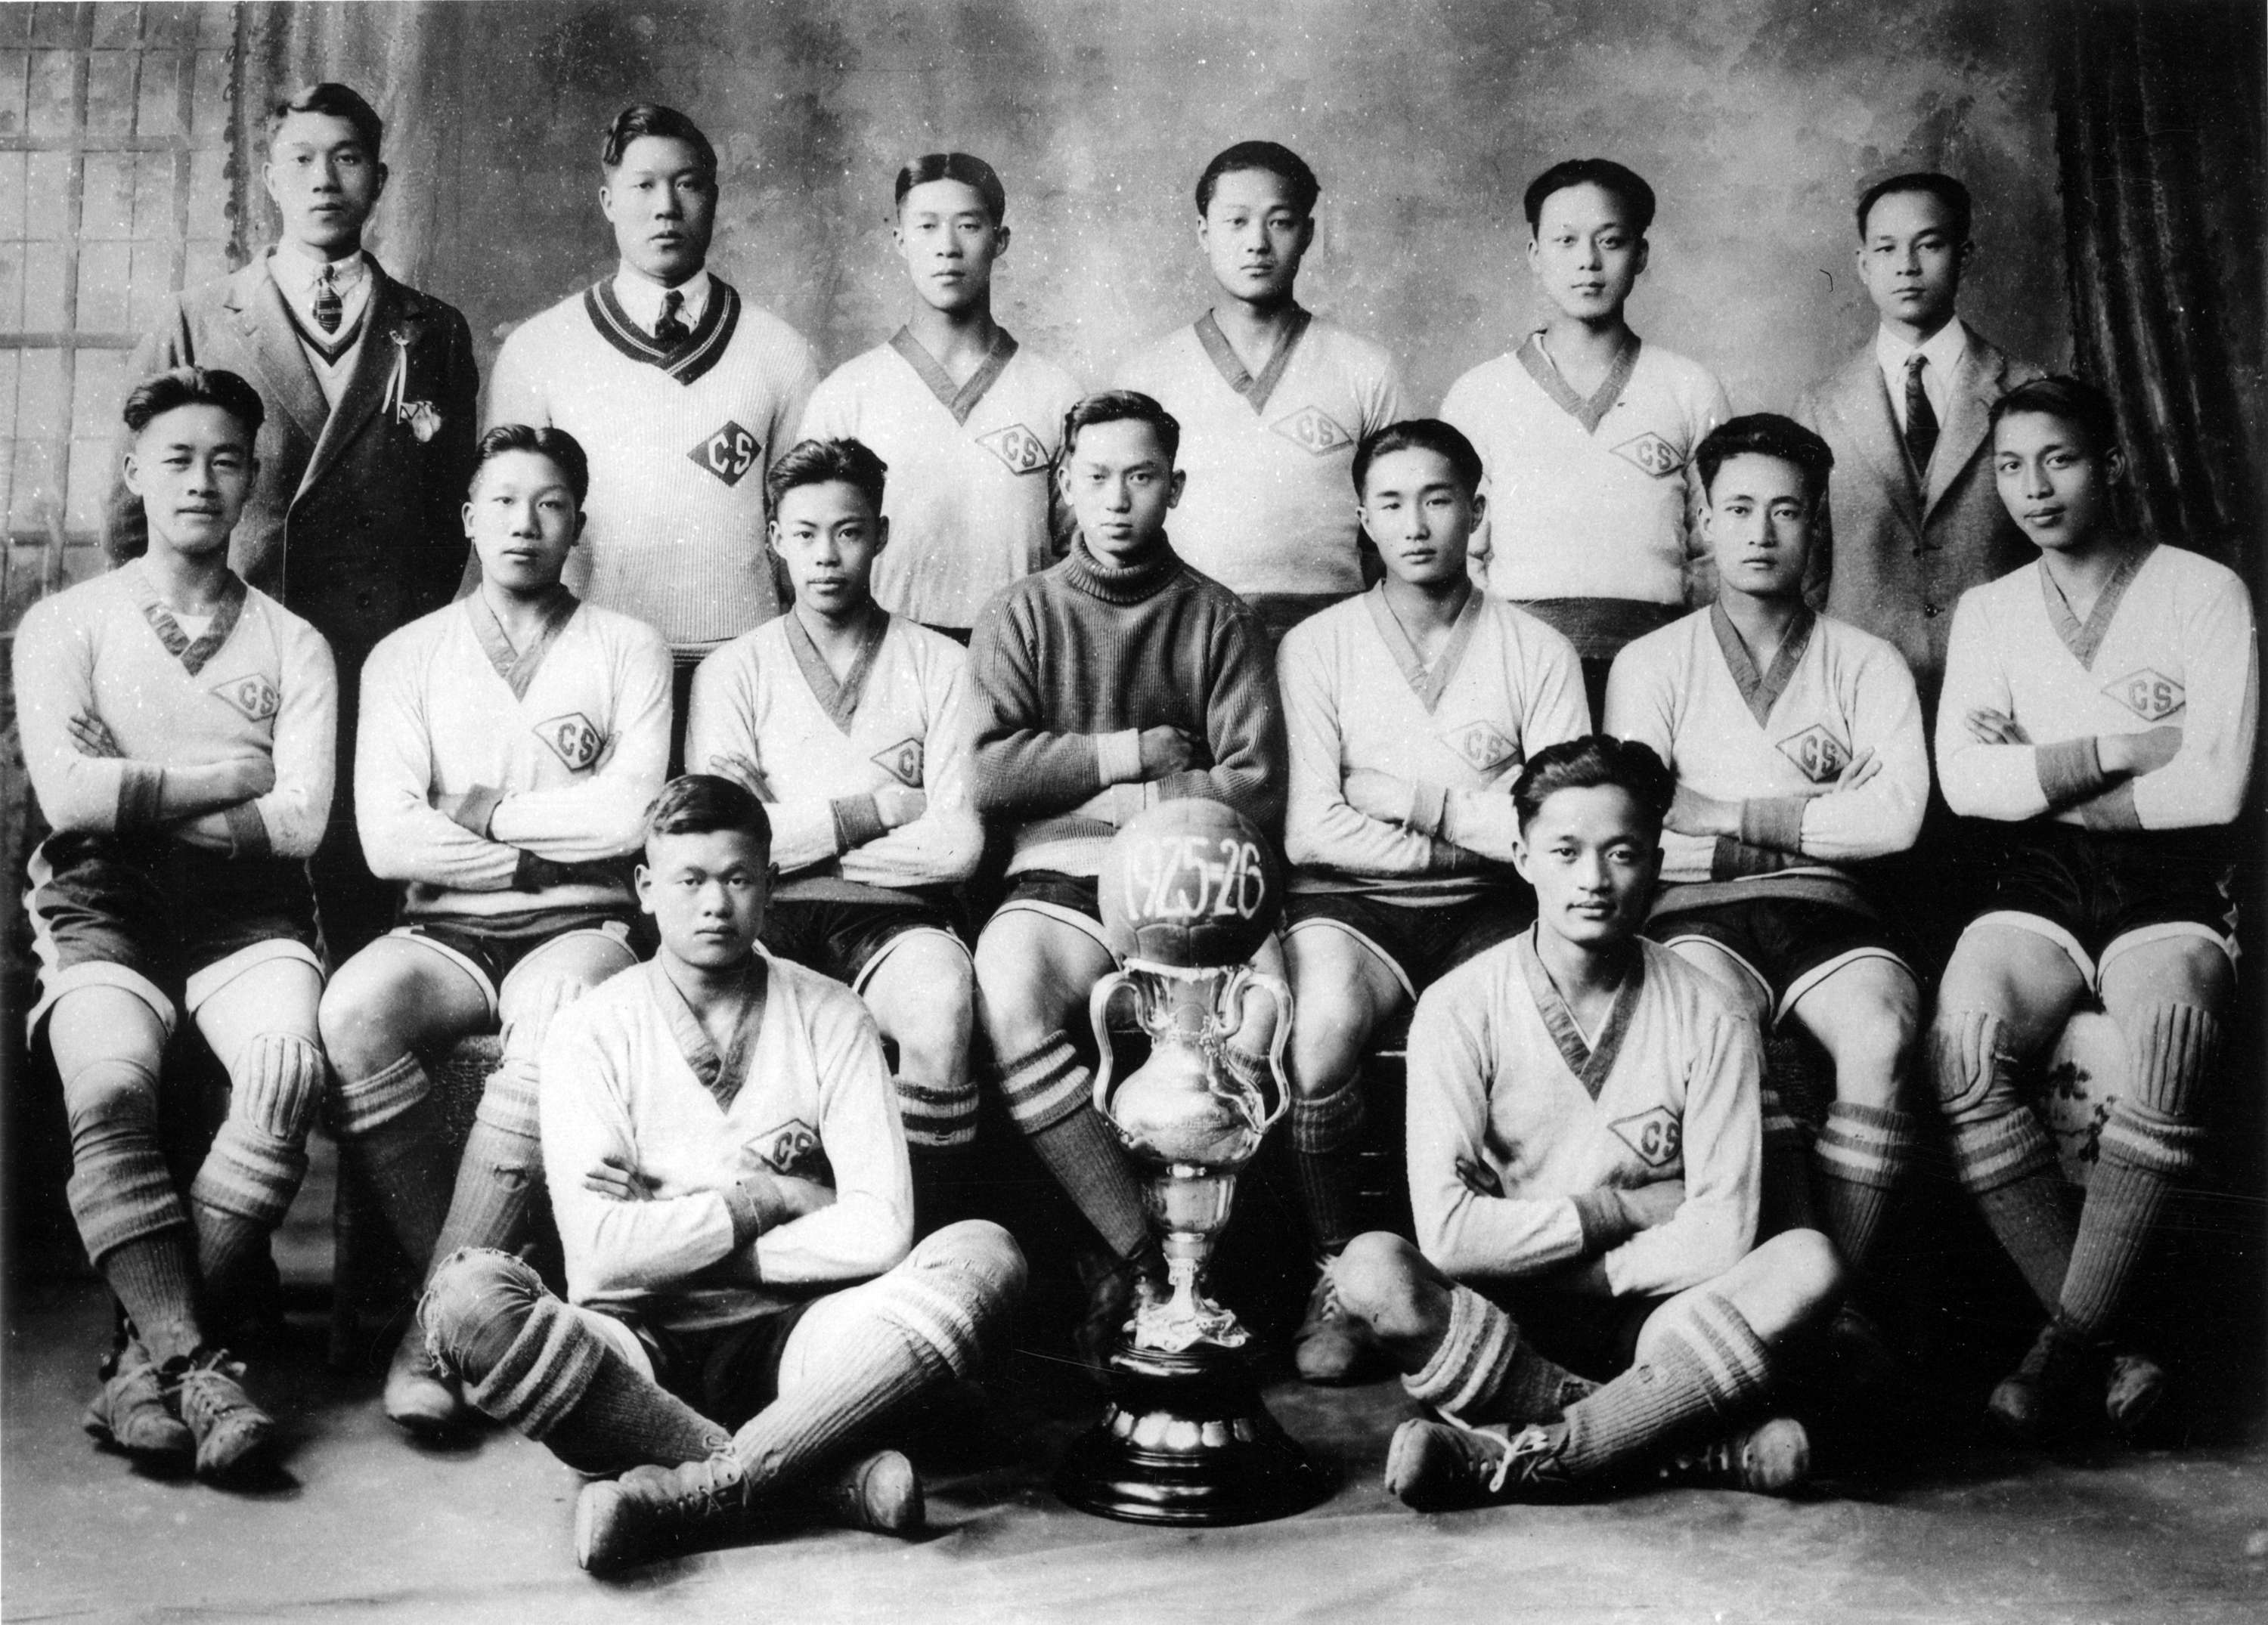 Équipe de soccer de la Chinese Students' Athletic Association, vers 1925.